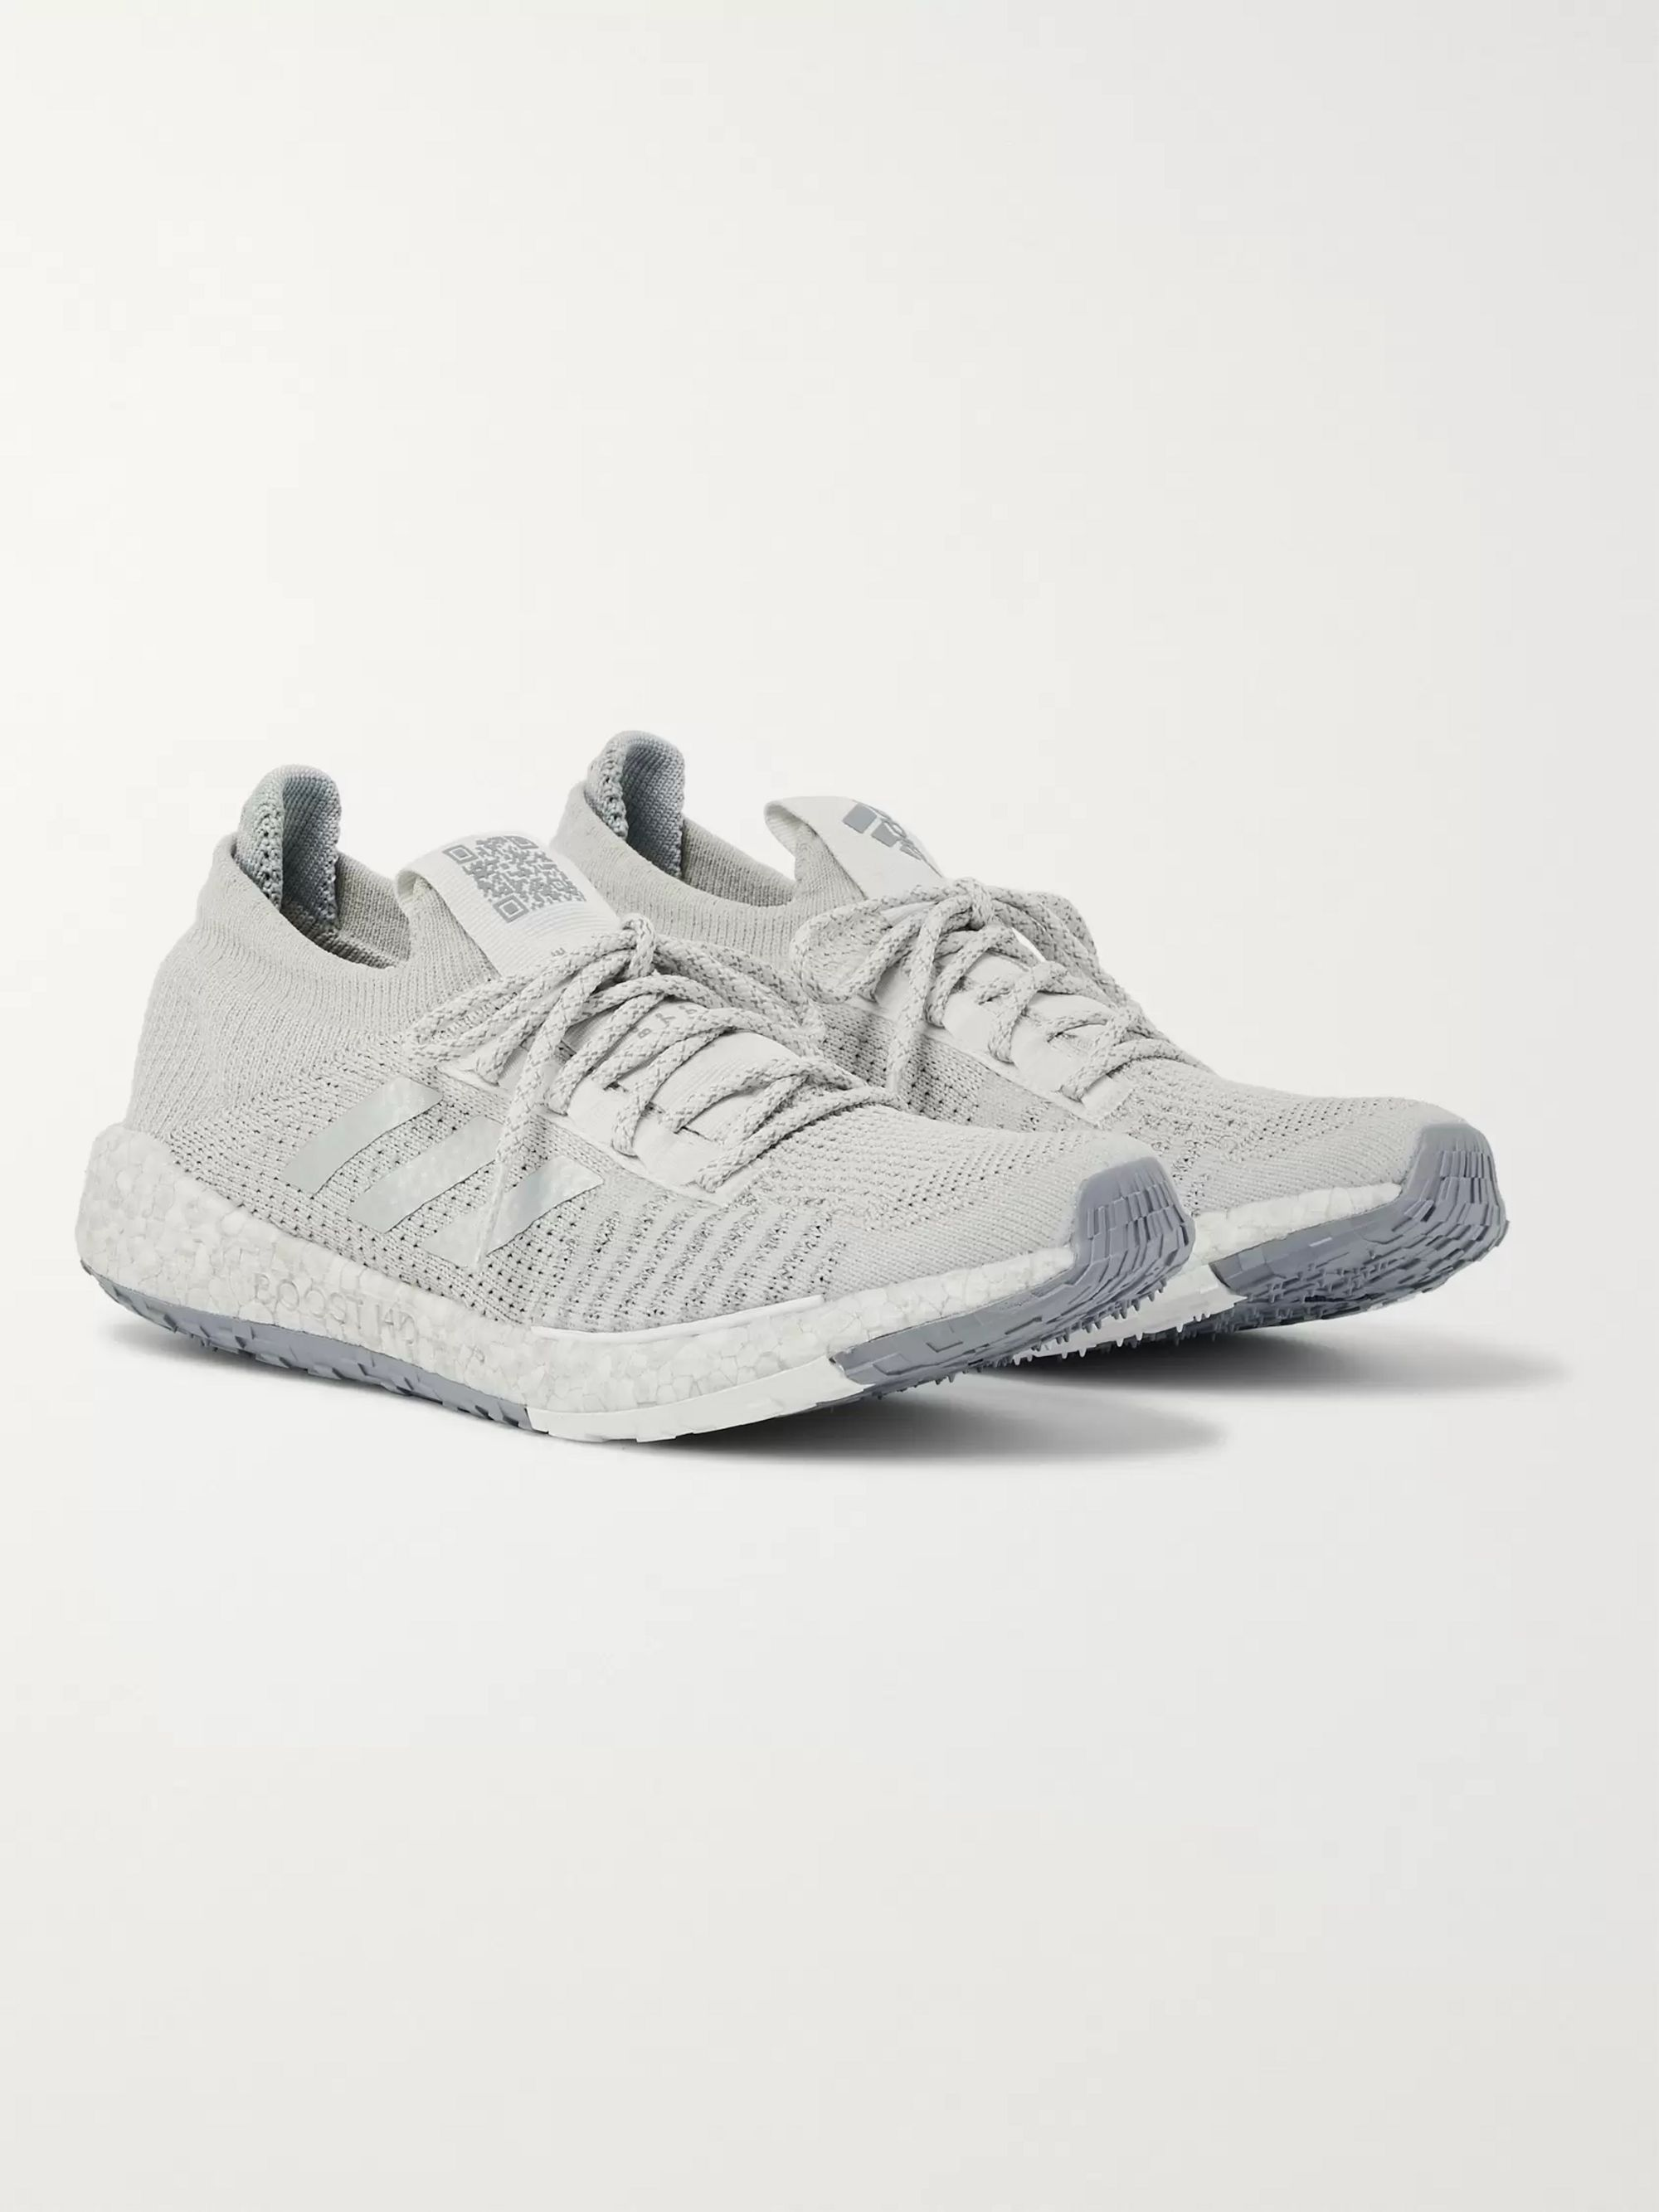 Adidas Sport PulseBOOST HD LTD Stretch-Knit Running Sneakers